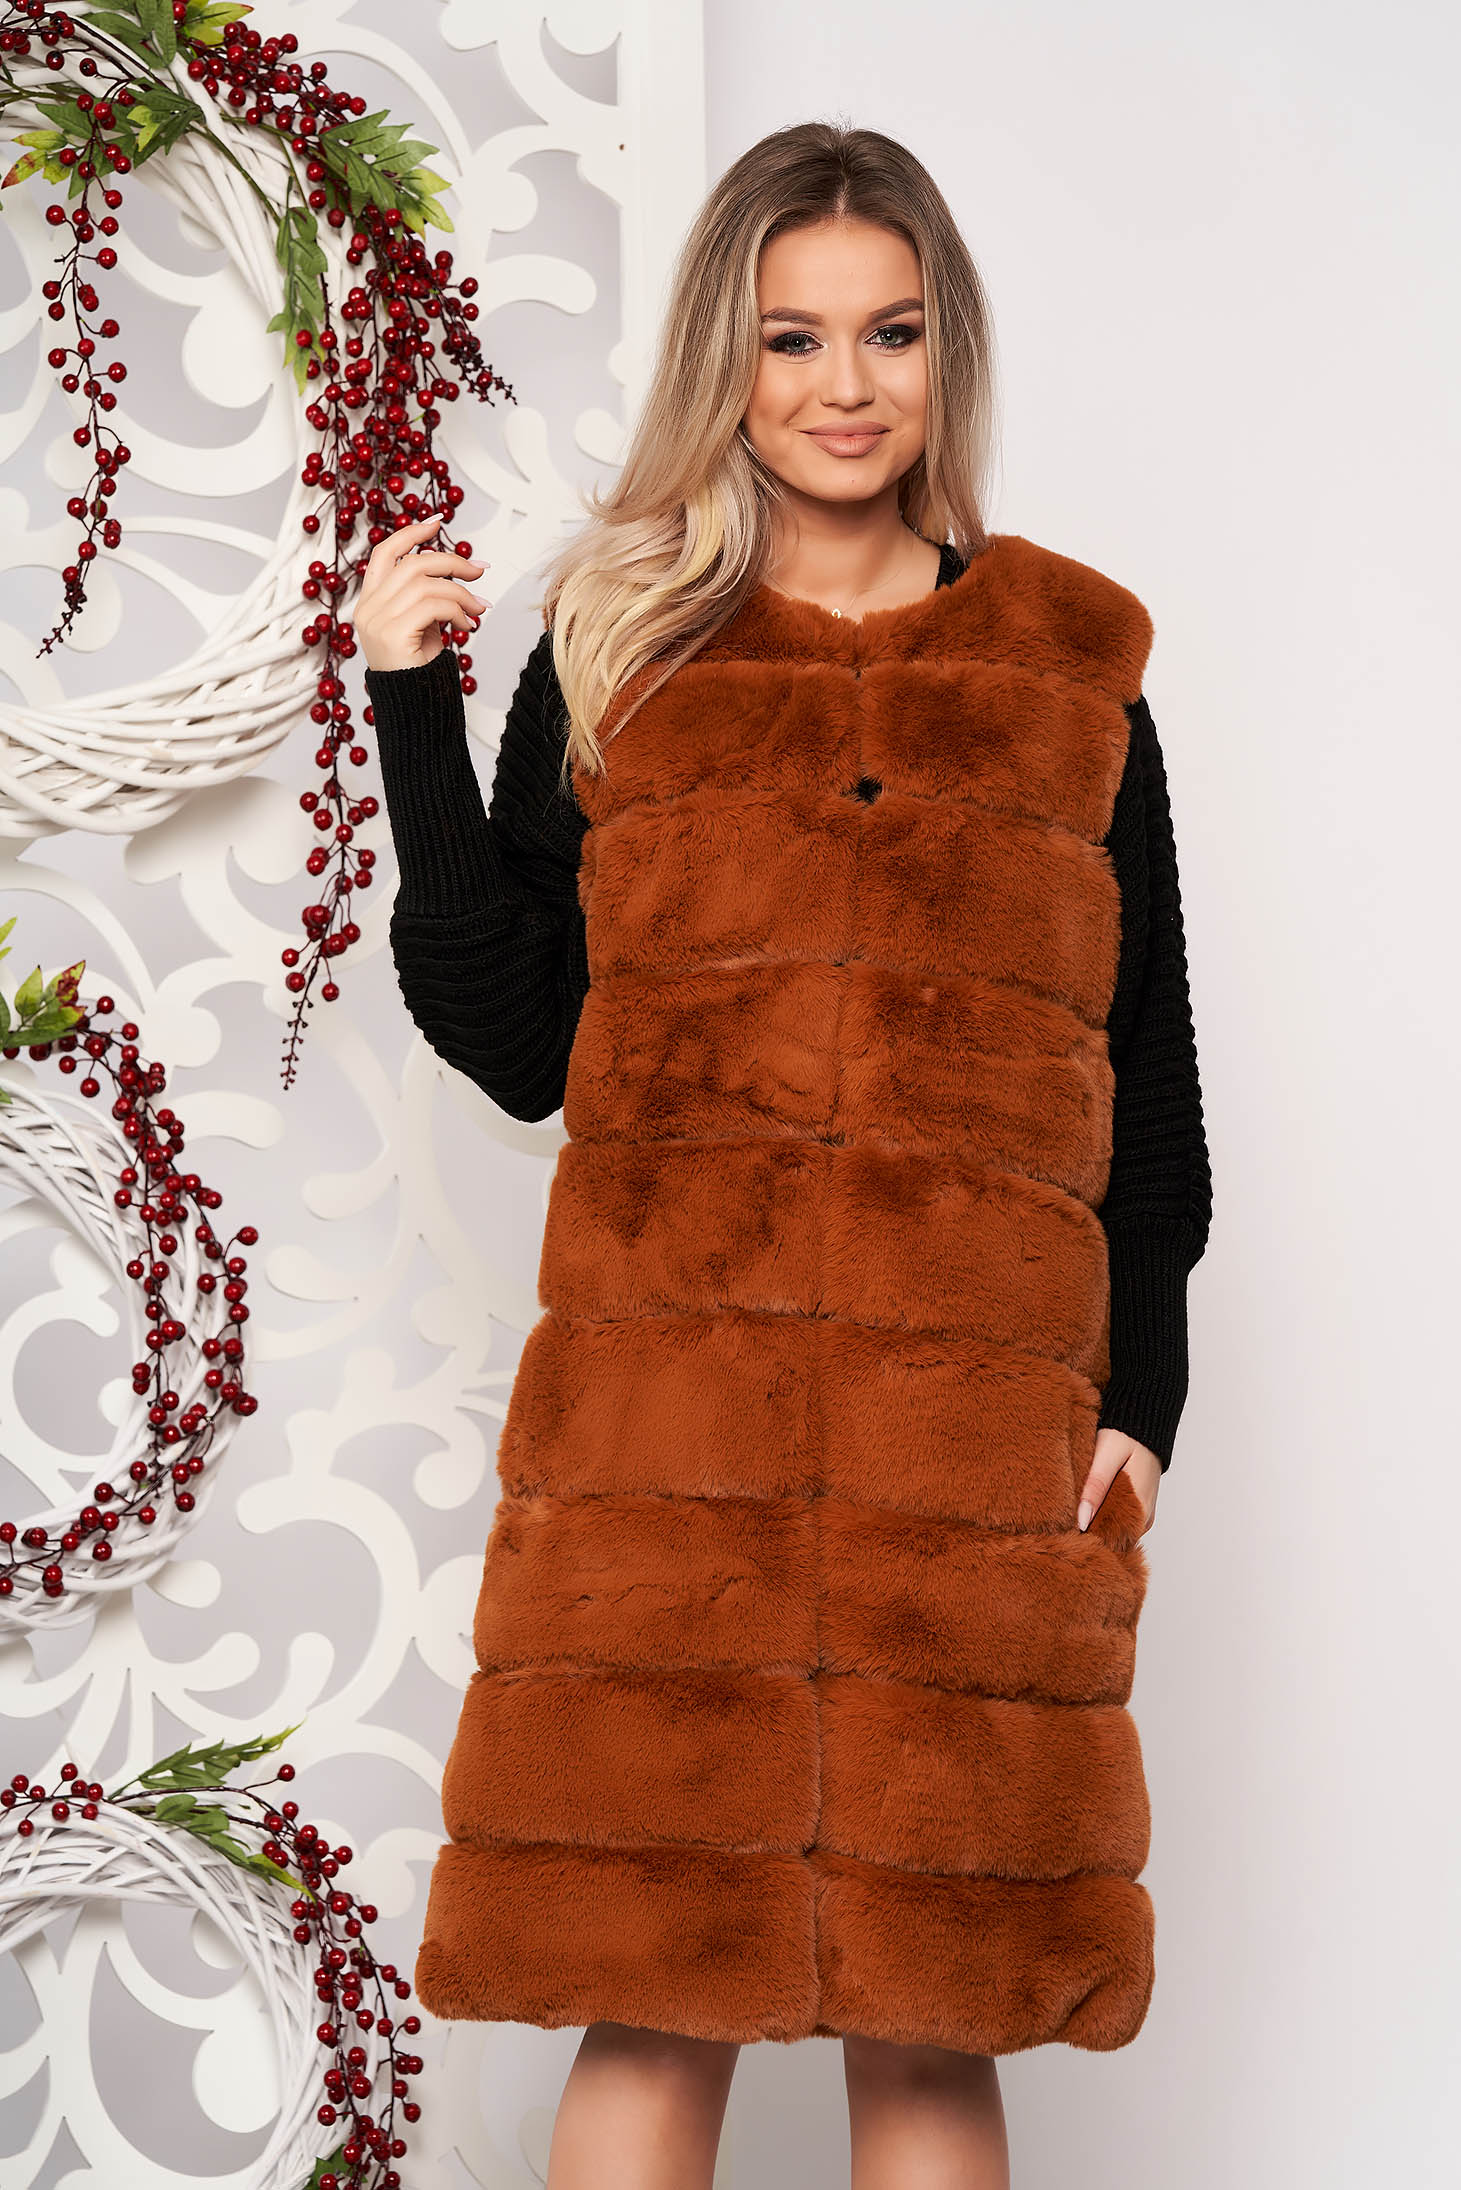 Gilet brown elegant from ecological fur with pockets with inside lining sleeveless